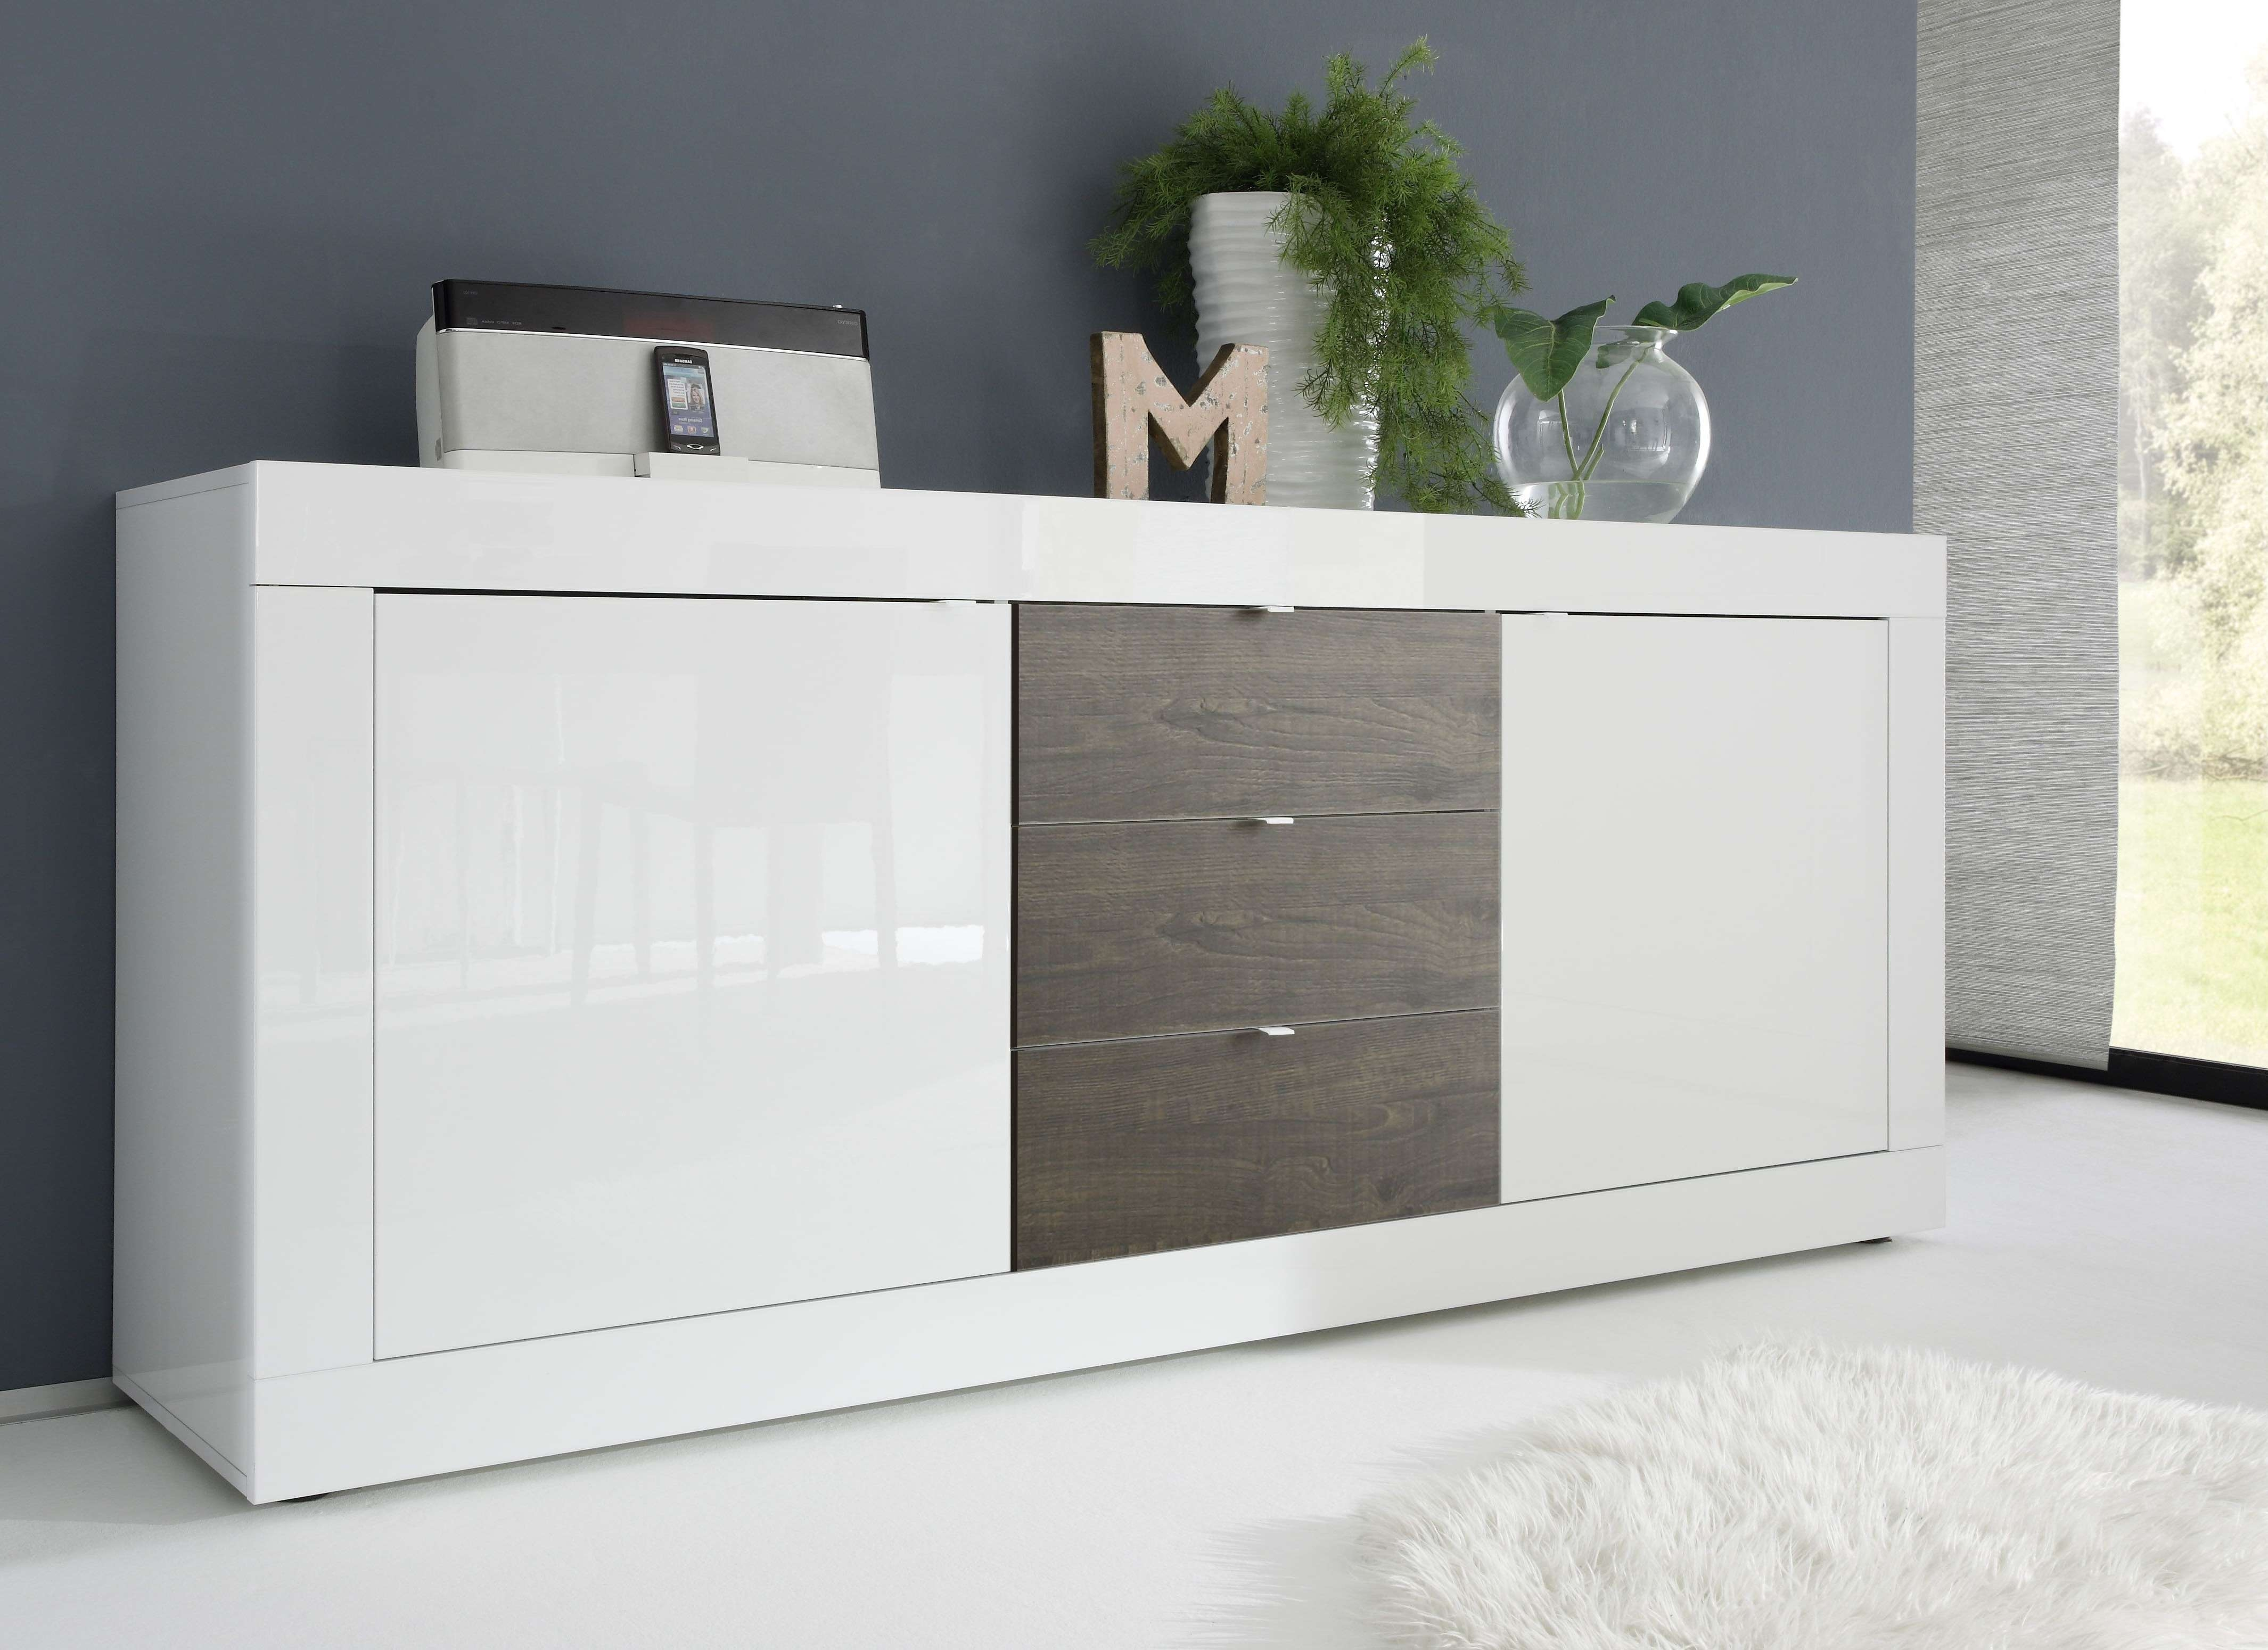 Dolcevita Ii White Gloss Sideboard – Sideboards – Sena Home Furniture In High White Gloss Sideboards (View 8 of 20)